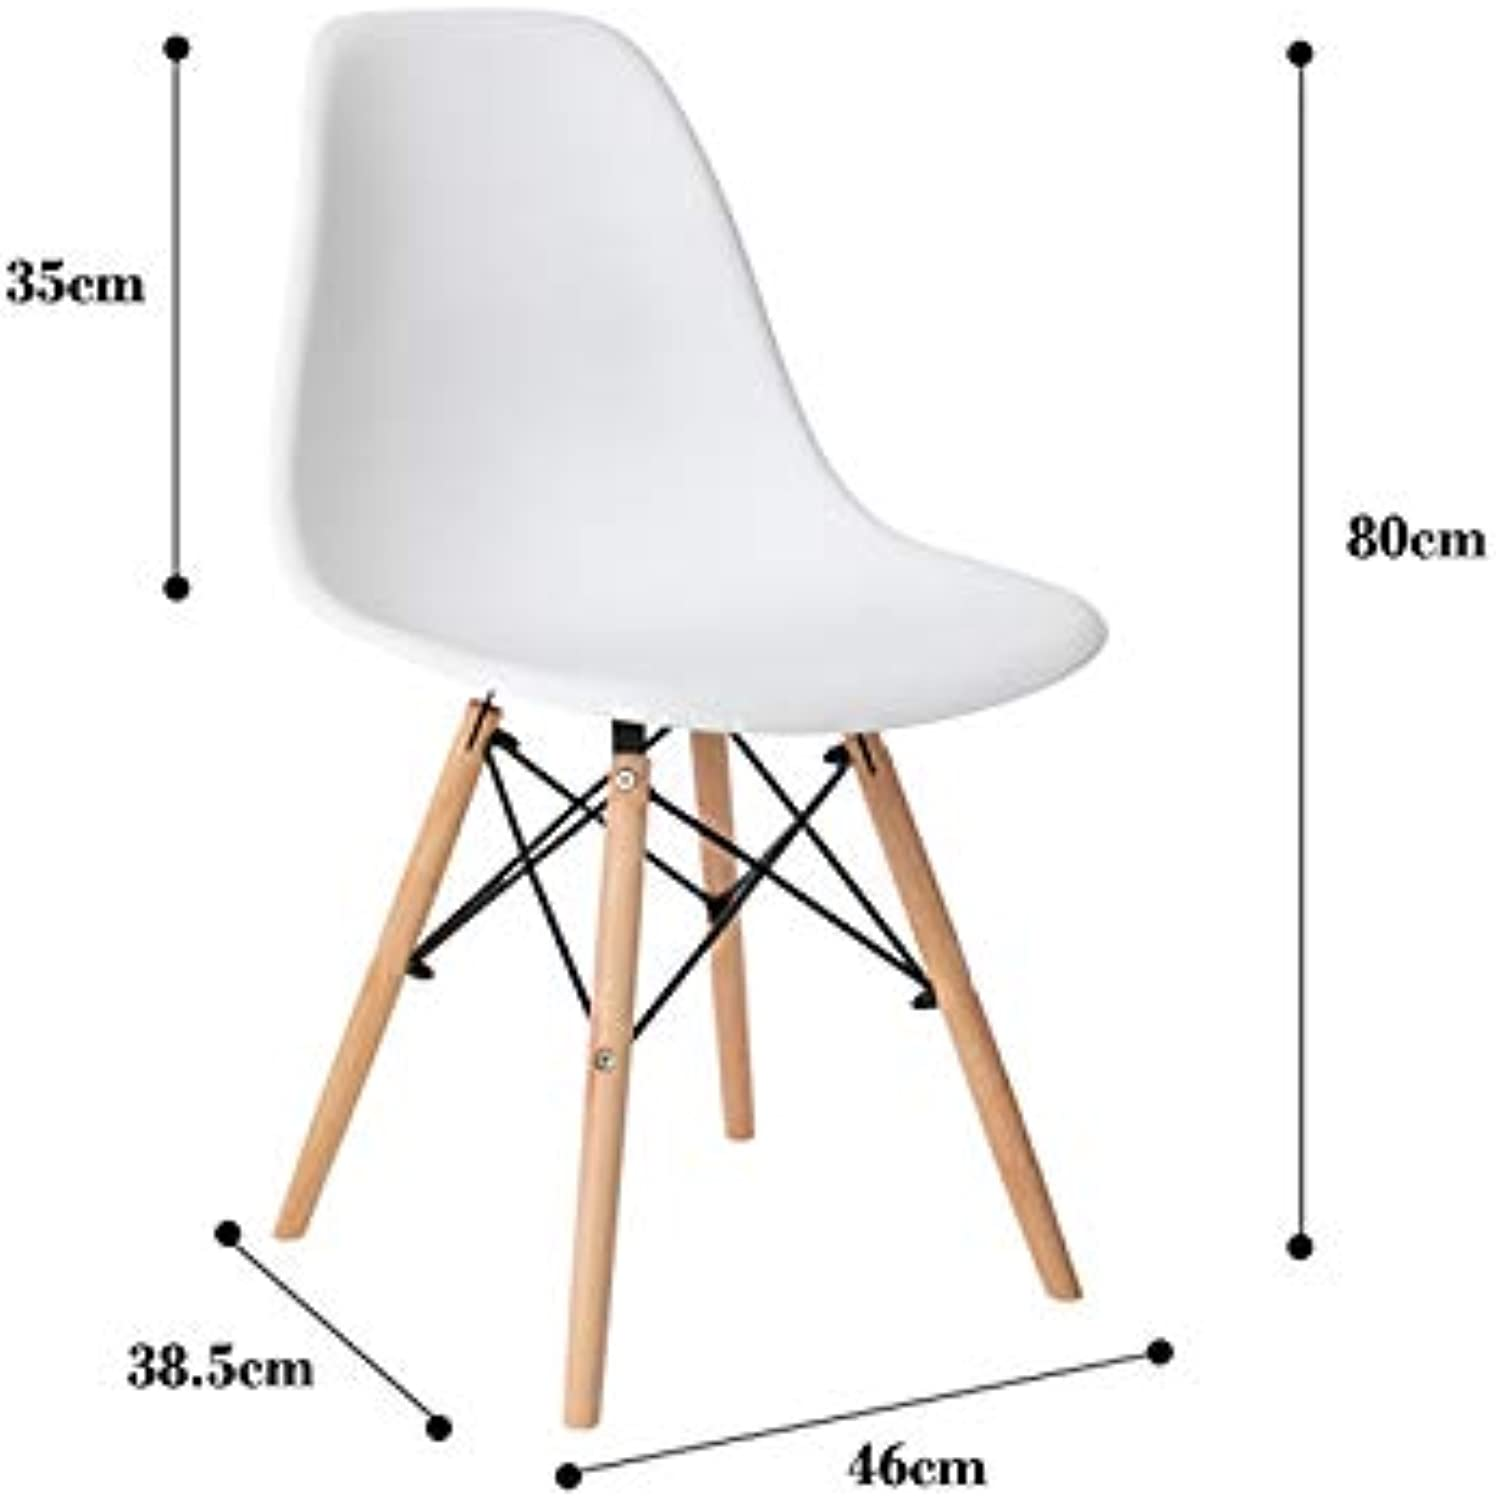 Makeup Chair Dressing Modern Minimalist Plastic Dining Chair Lazy Backrest Chair Change shoes Bench (color   White)